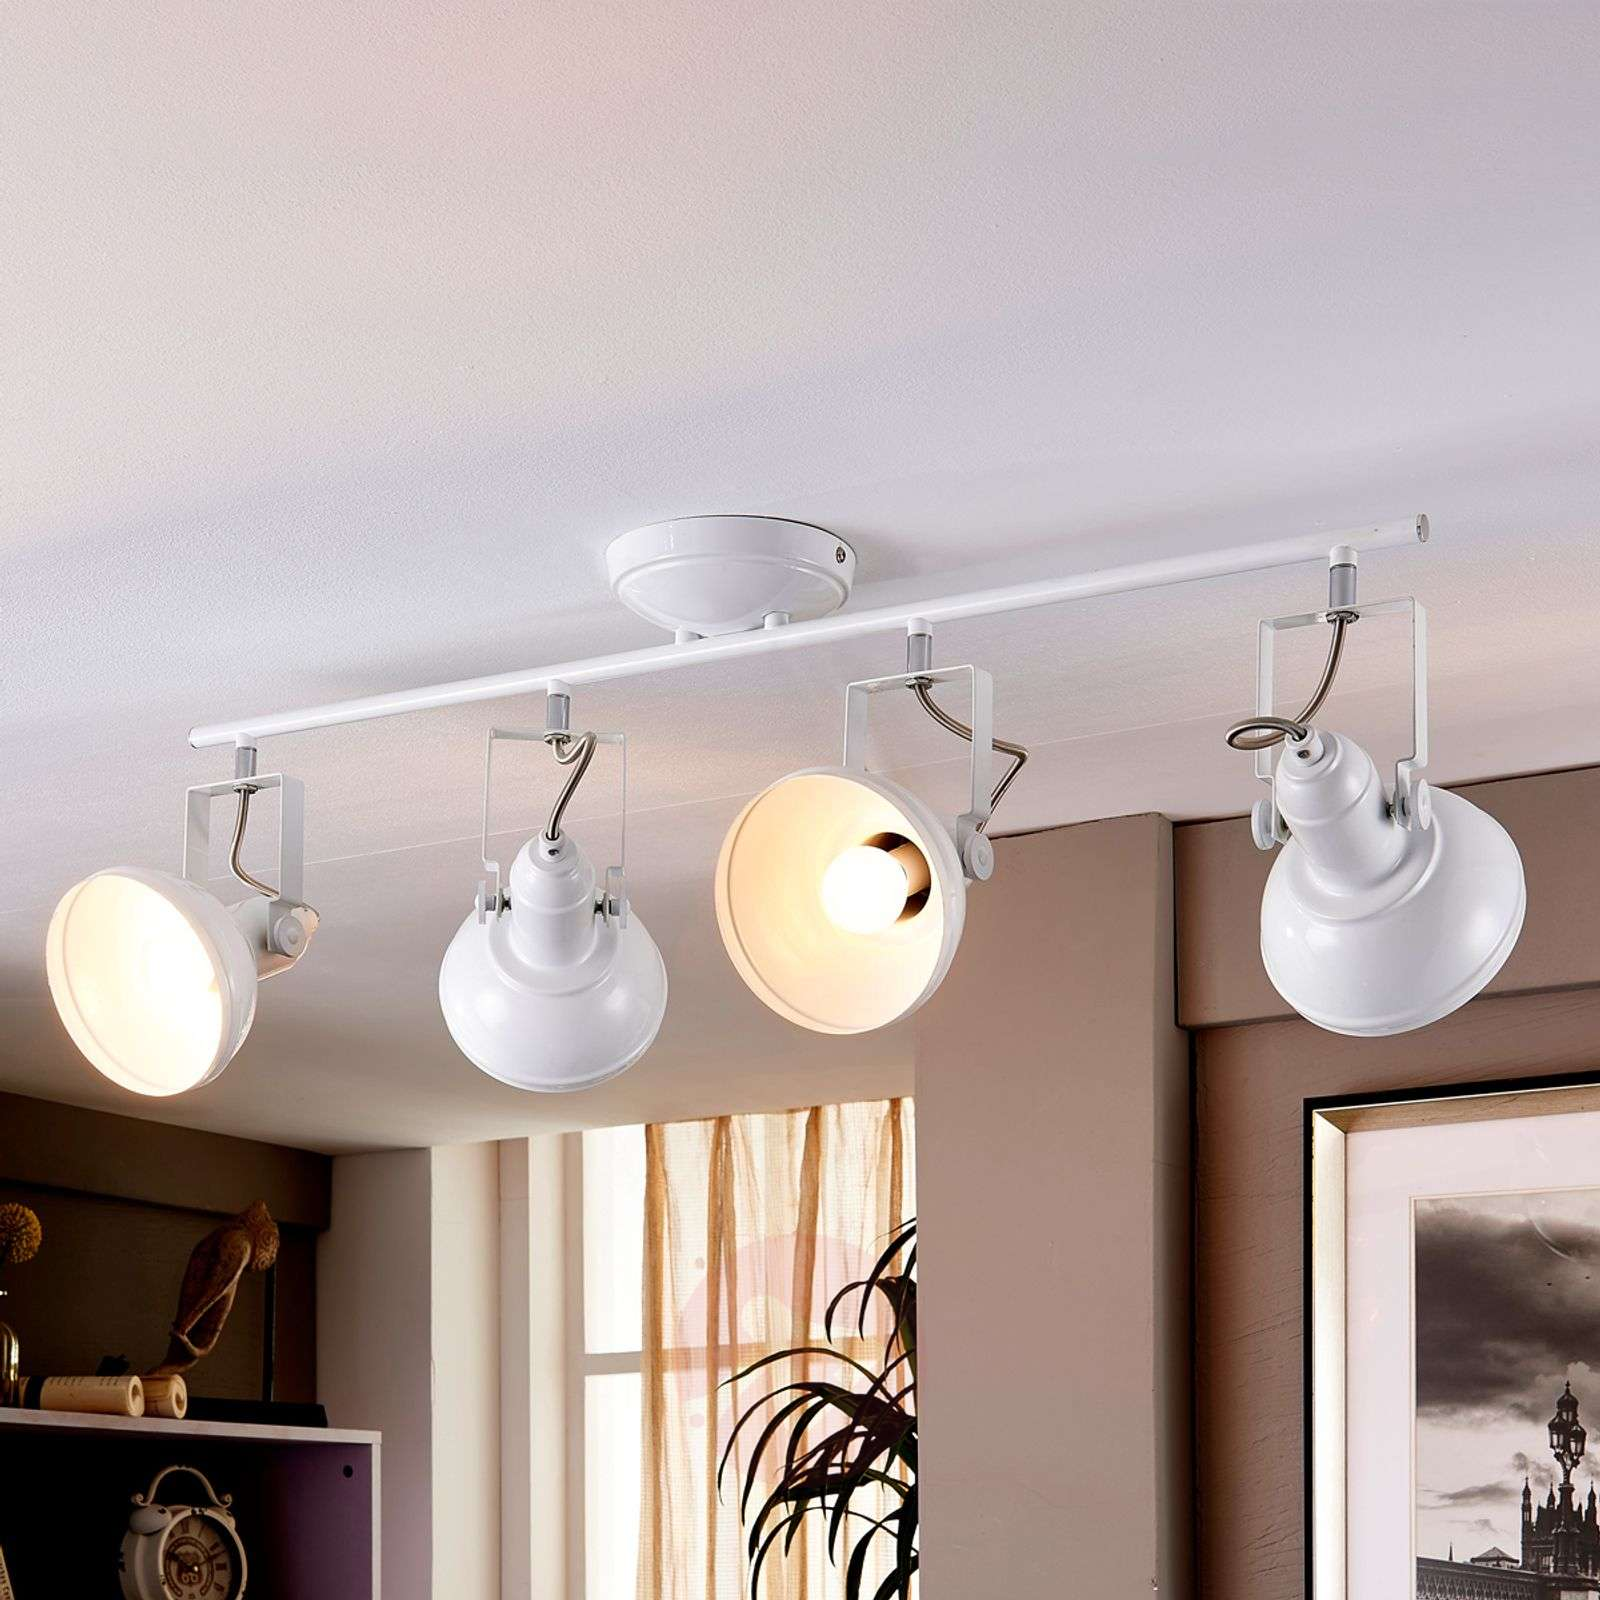 LED Kitchen Lamp Tameo With White Lampshades 9621026 01 ...